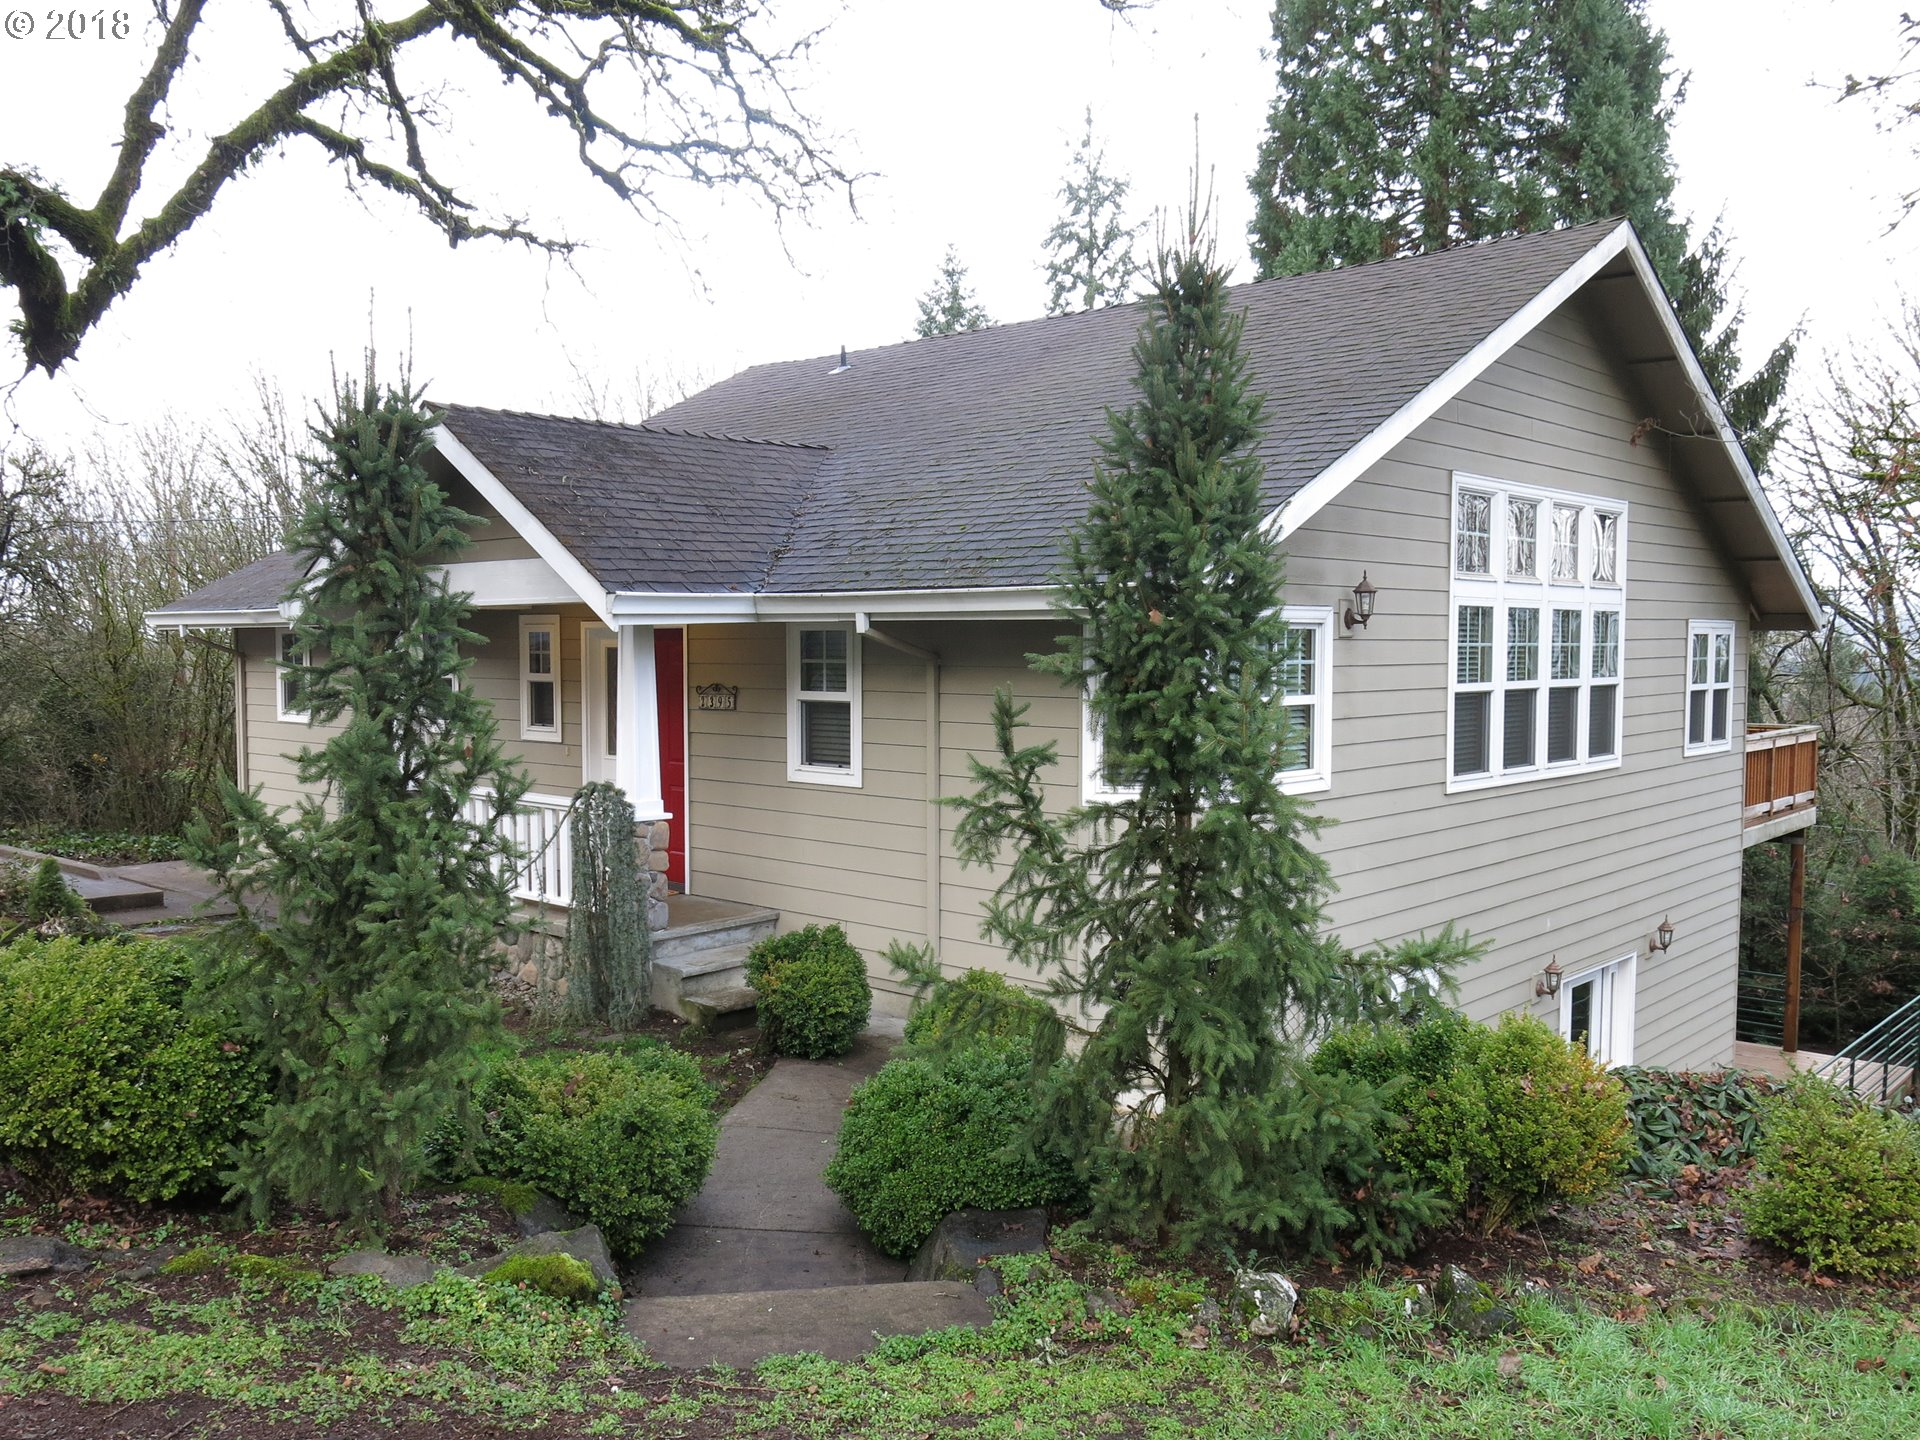 2395 RANDALL ST, West Linn, OR 97068